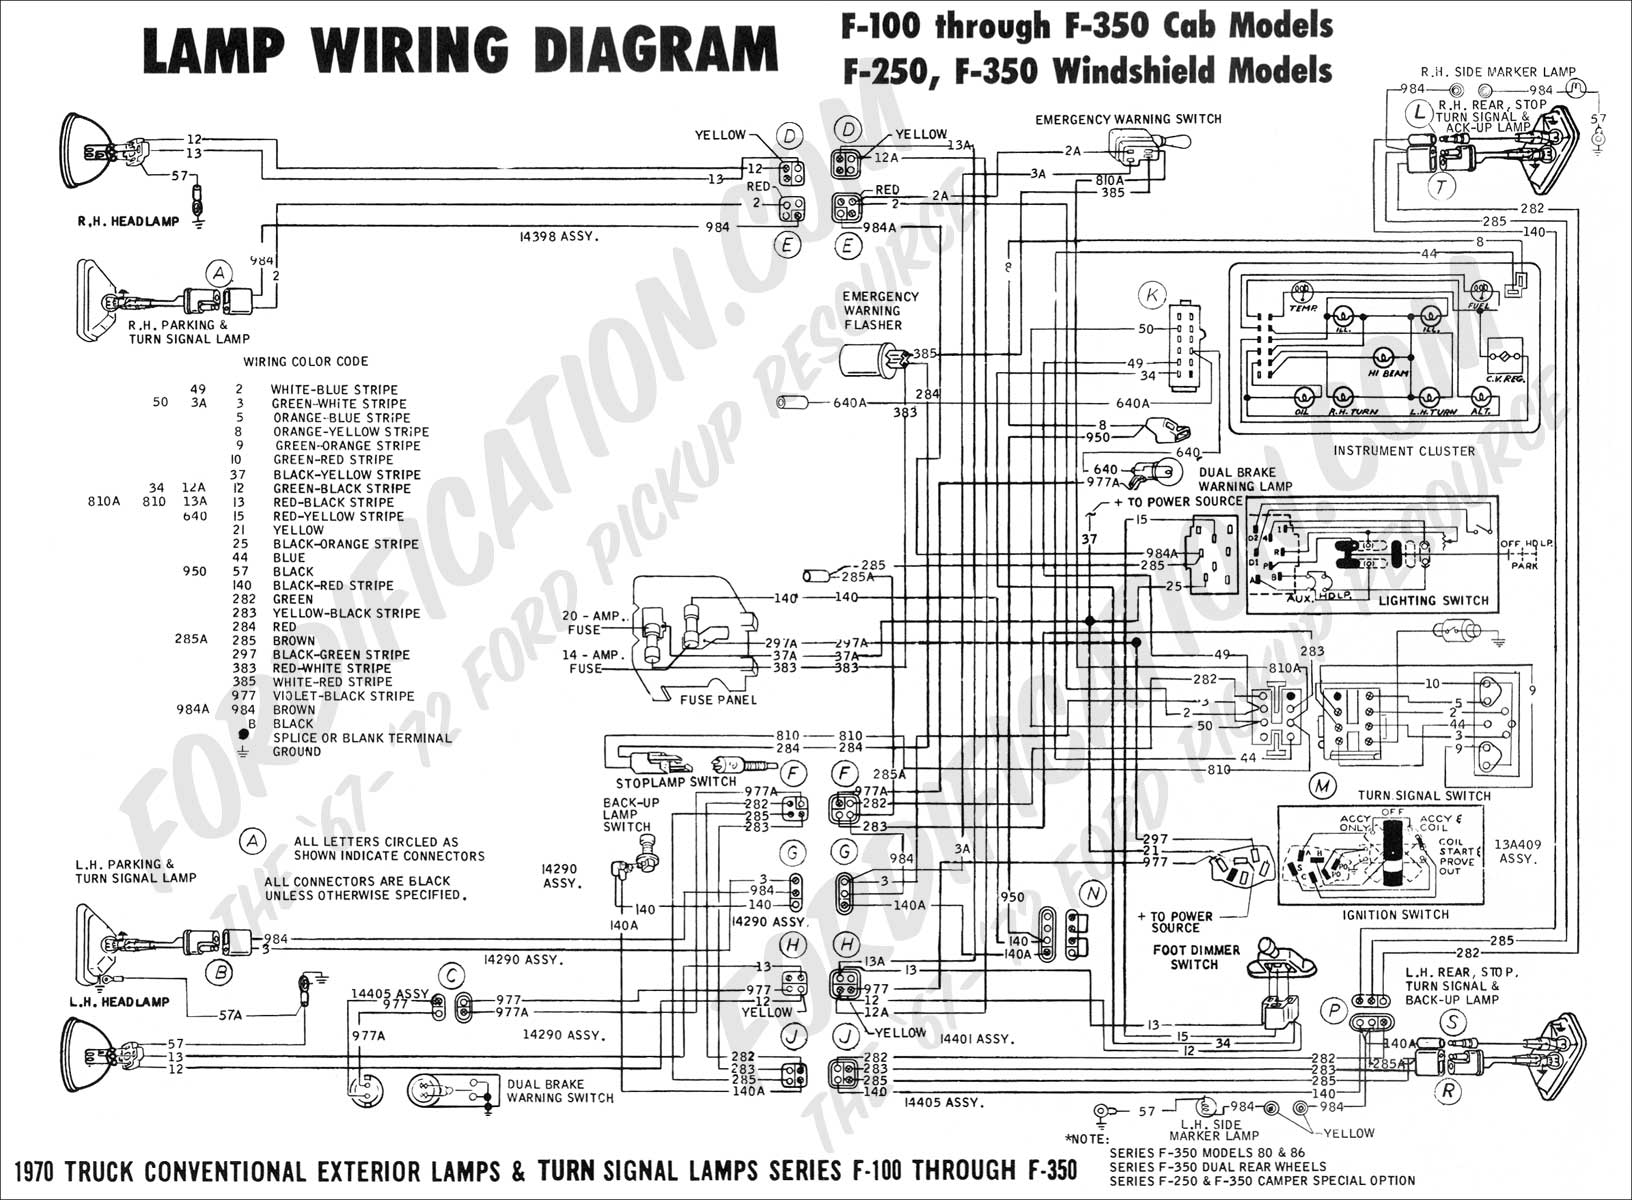 wiring diagram_70ext lights01 ford truck technical drawings and schematics section h wiring 2008 ford f250 wiring diagram at bayanpartner.co